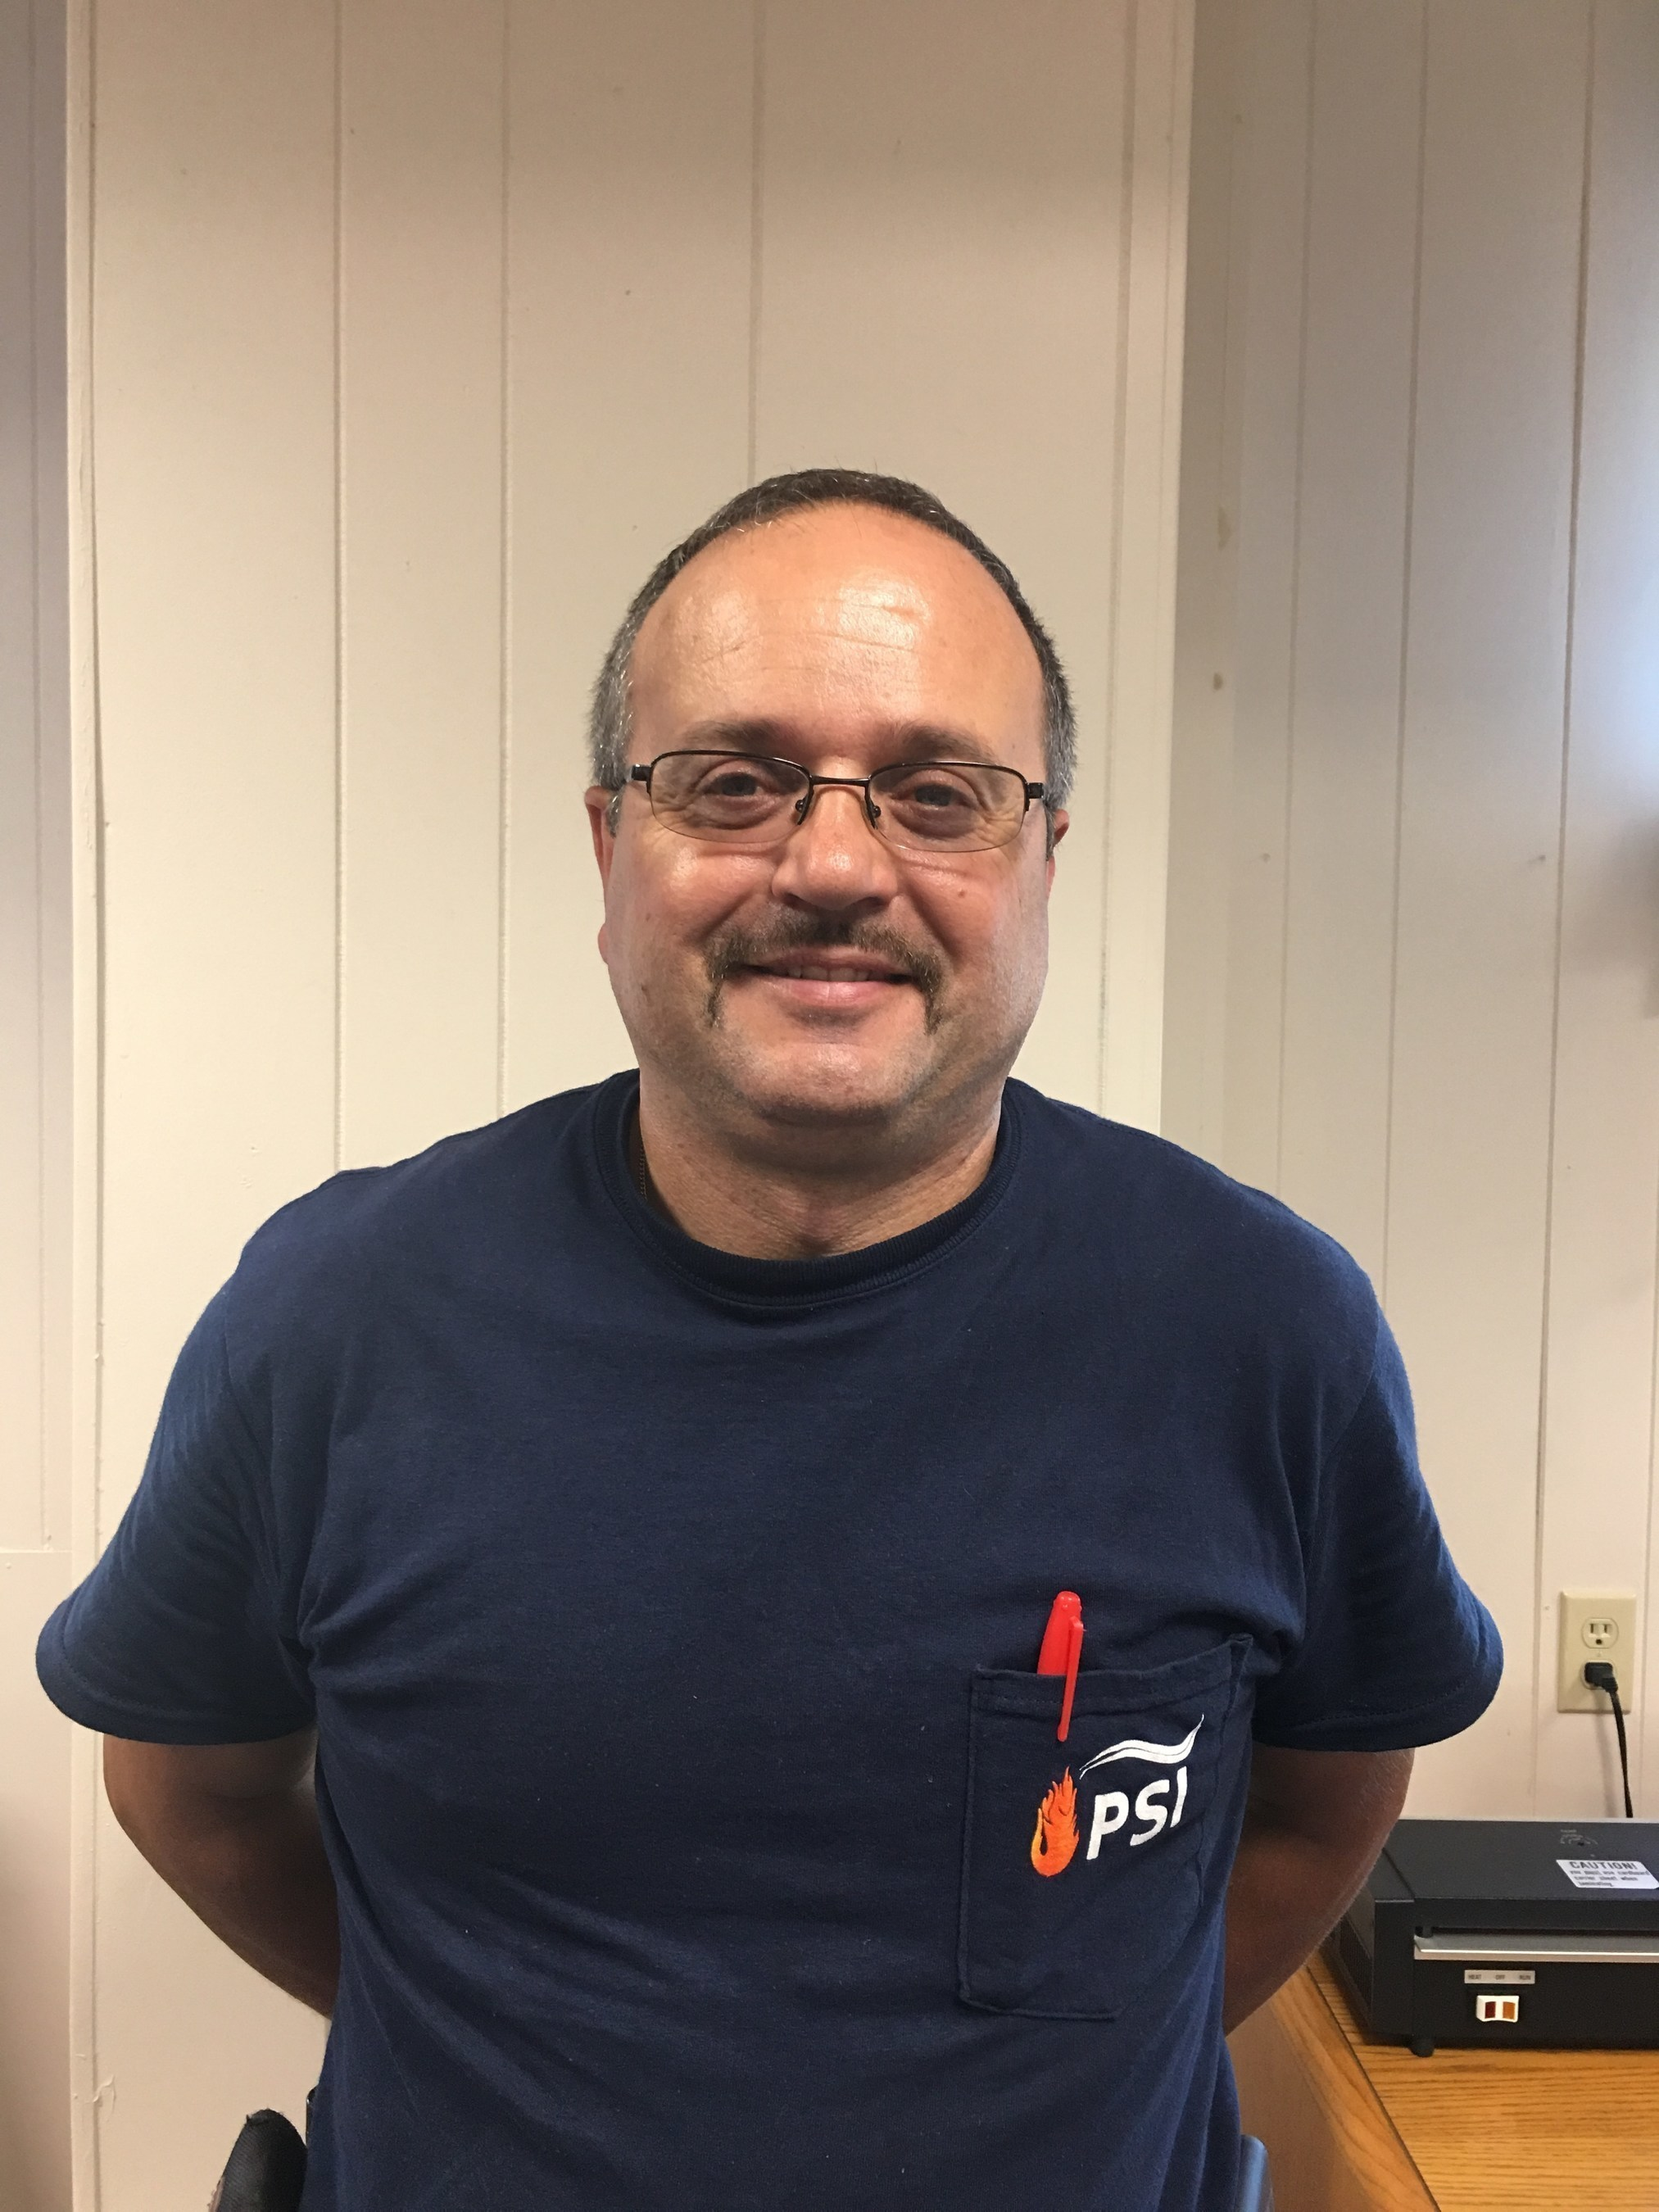 Victor Silva joins the Piping Systems, Inc. team with more than 15 years of millwright experience and more than 30 years of electrical experience.